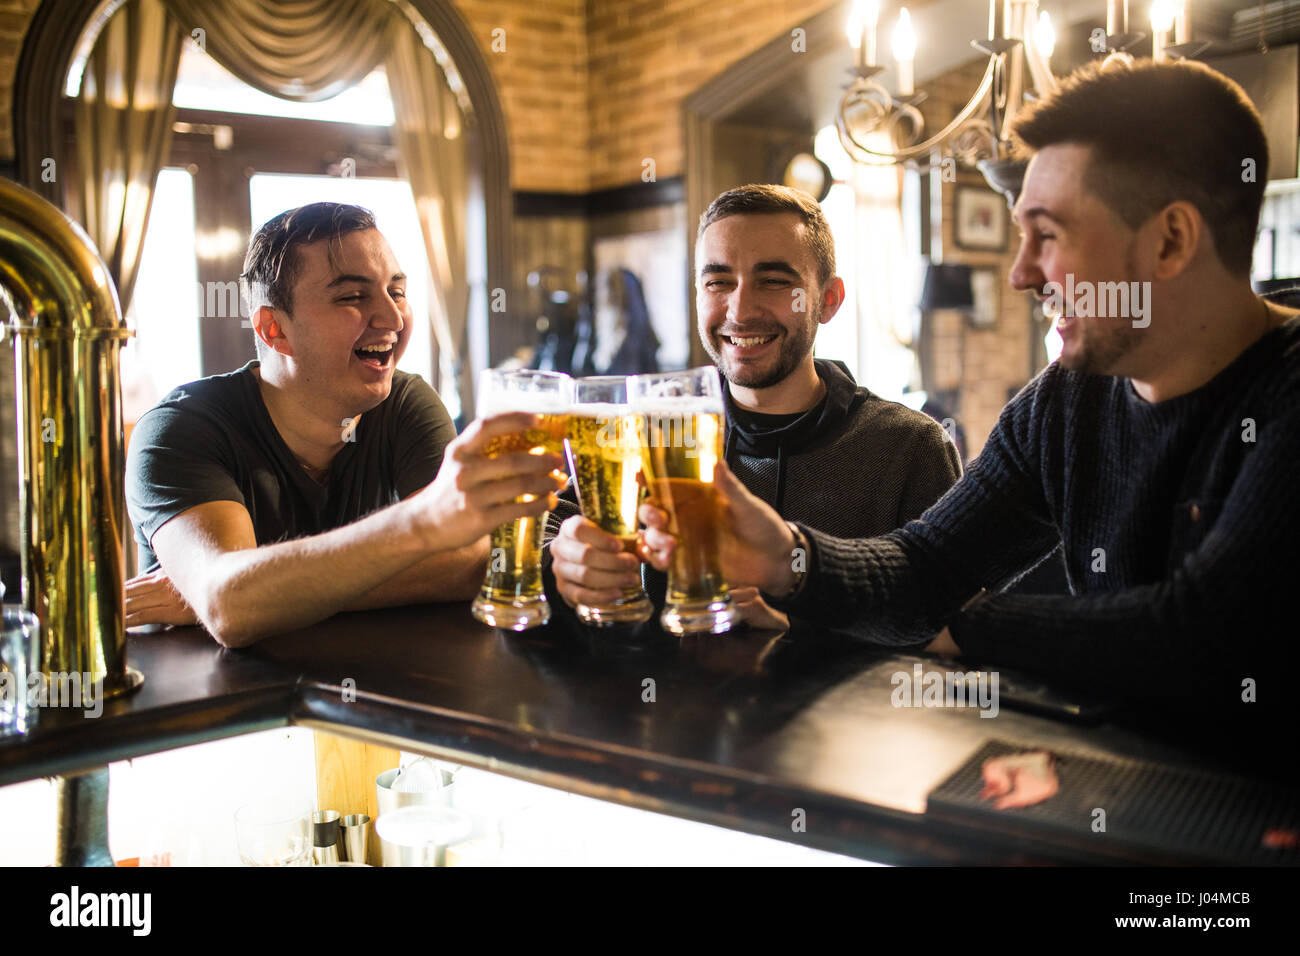 Three happy young men in casual wear talking and drinking beer while sitting at the bar counter together - Stock Image